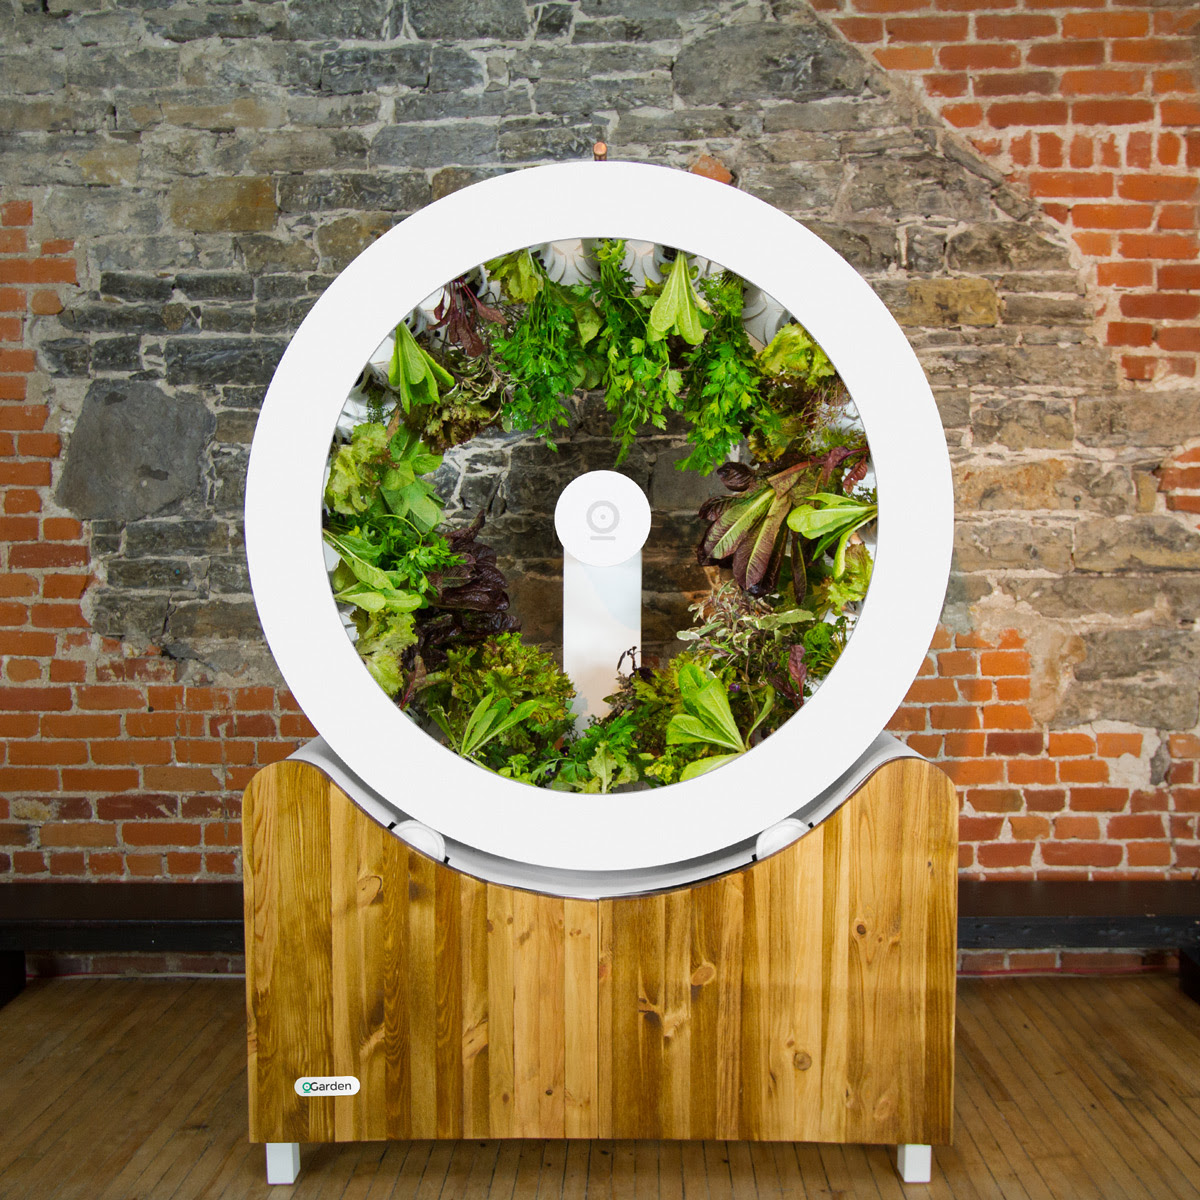 Voici OGarden  Rotating Planter Wheel With Central Light Source  The Green Head